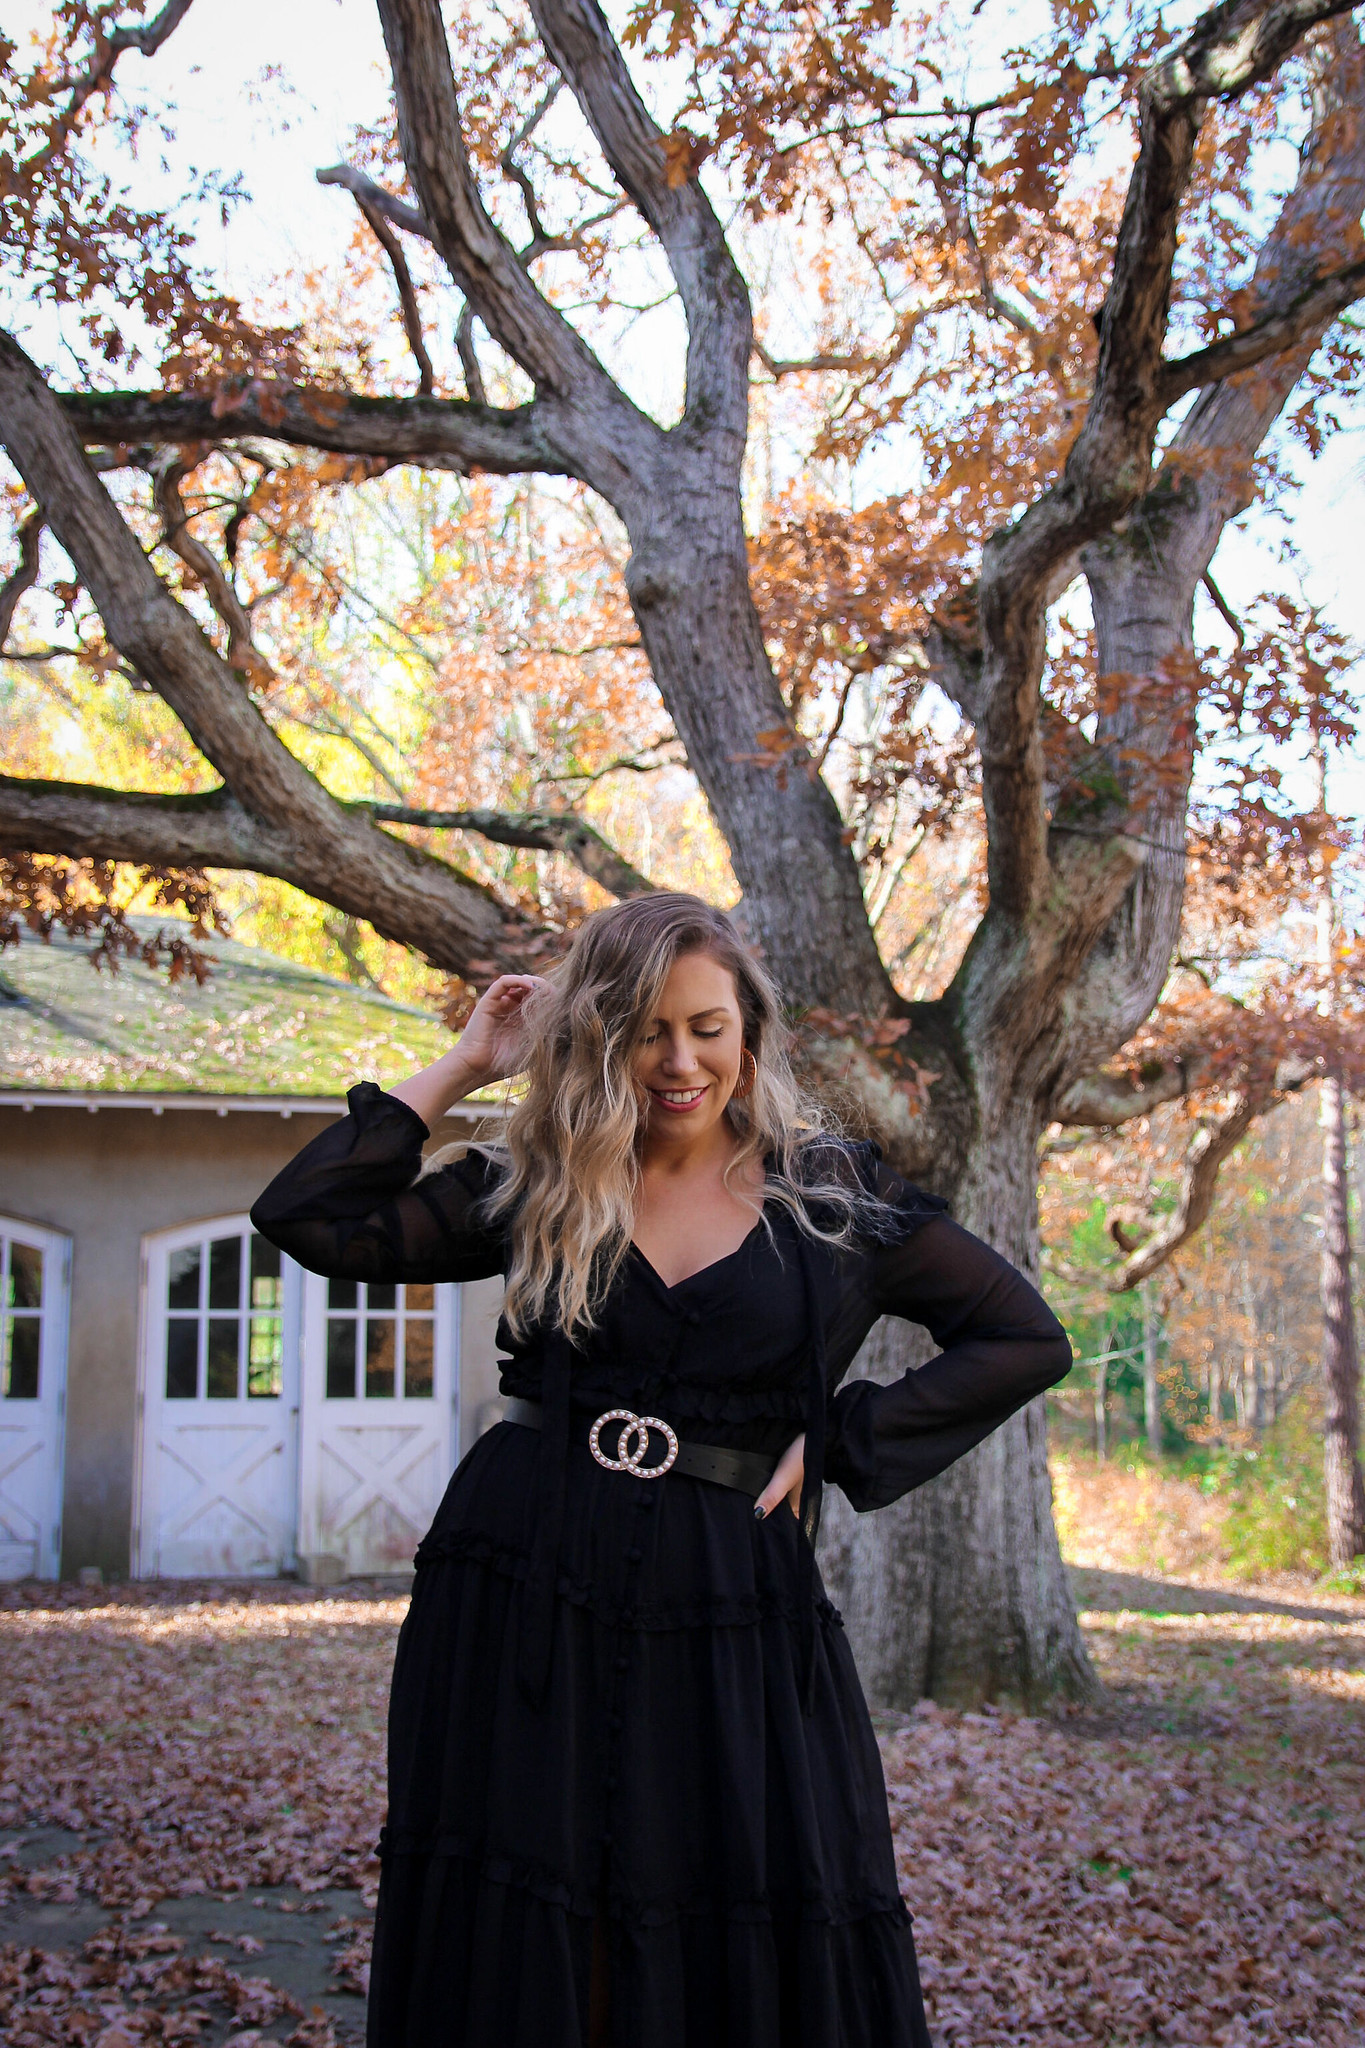 Long Black Sheer Dress Fall Photoshoot in New York | Fall Foliage | Westchester County NY Merestead